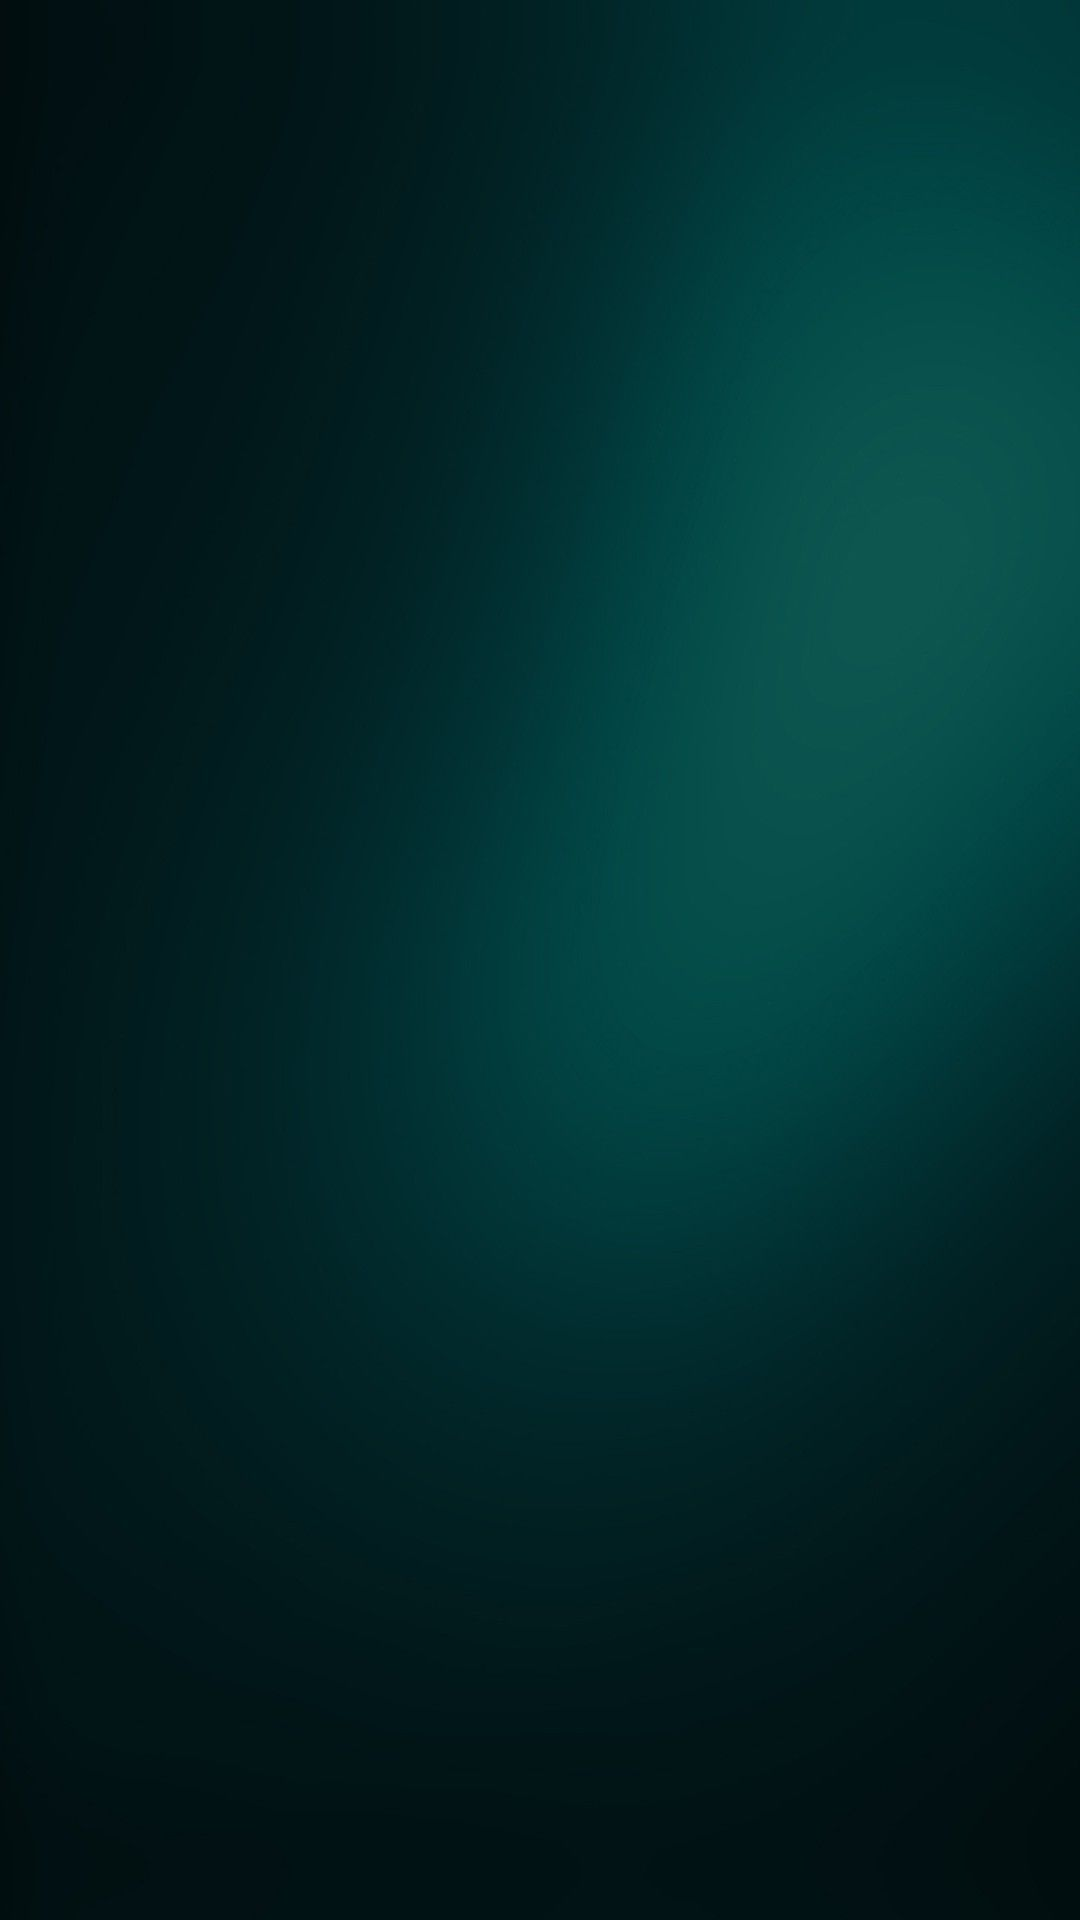 Green Wallpaper Hd Iphone Posted By Ethan Mercado